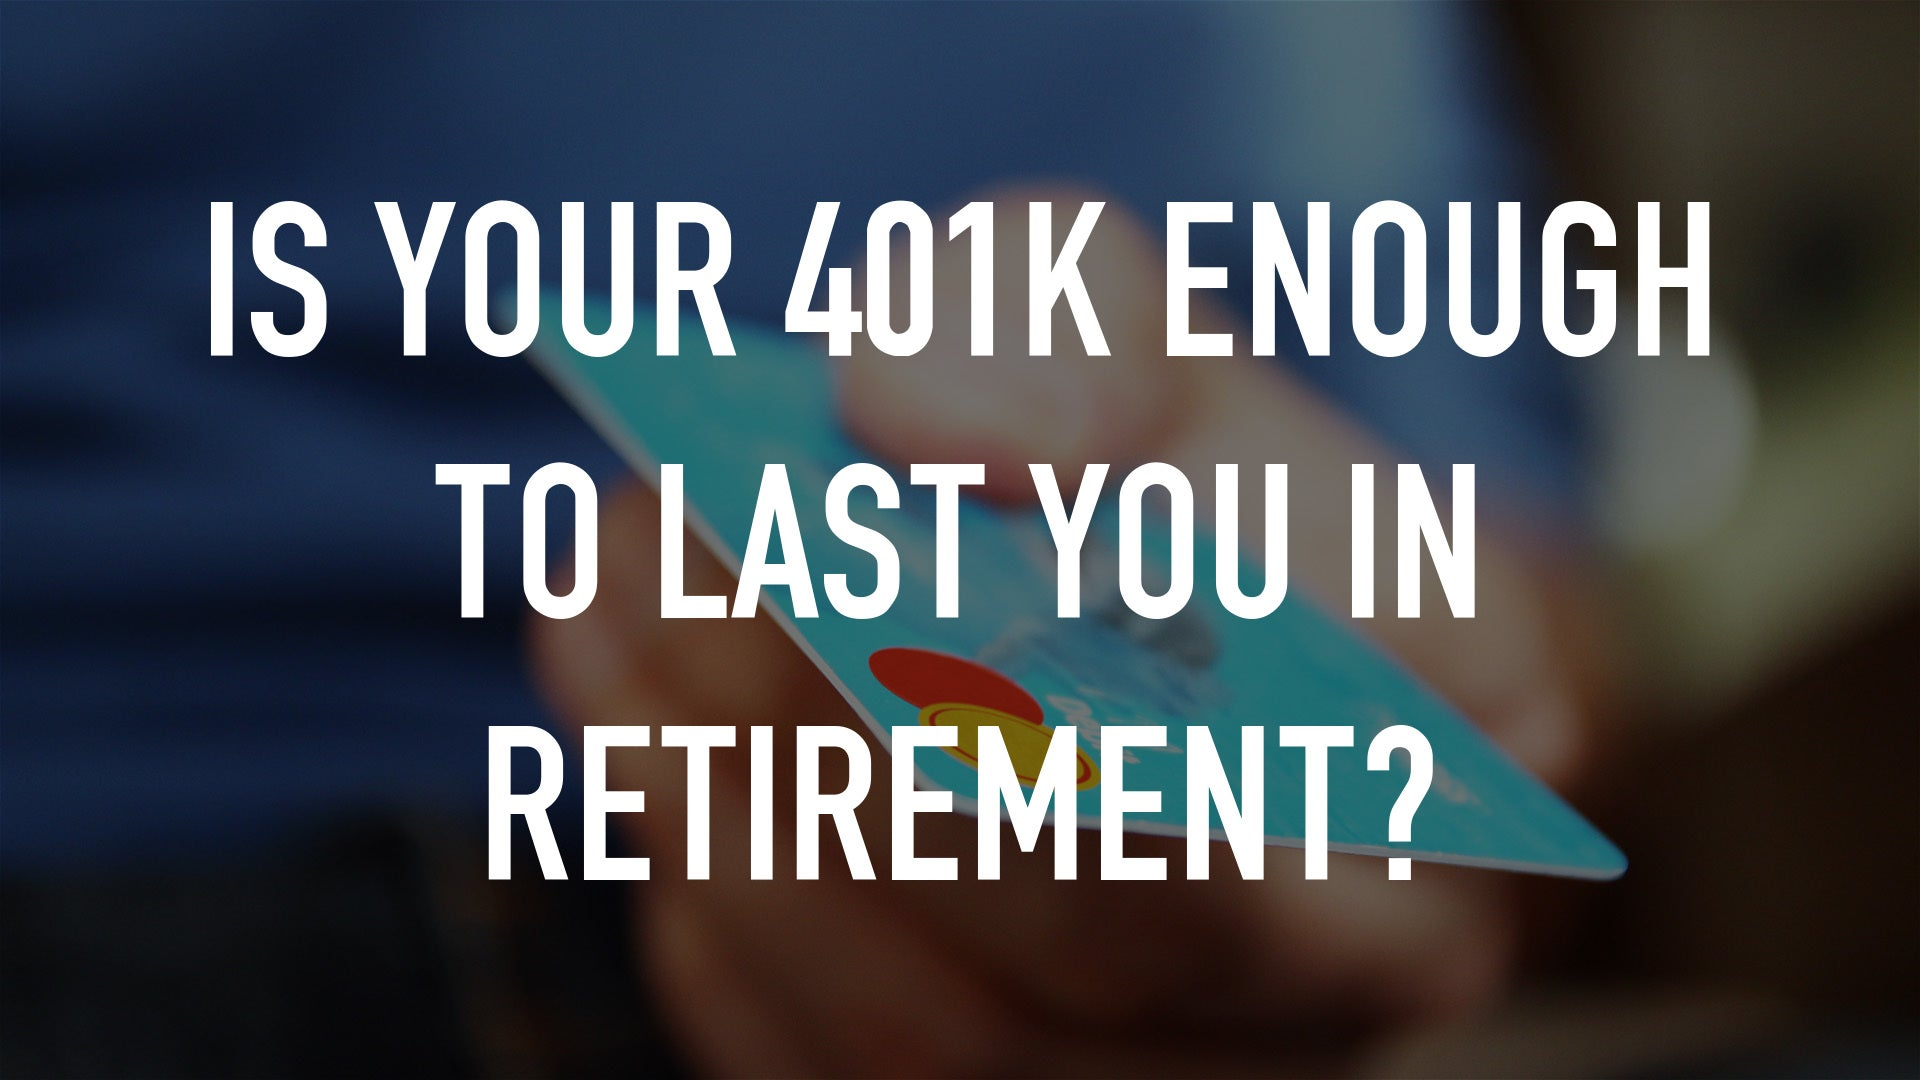 Is your 401K enough to last you in retirement?